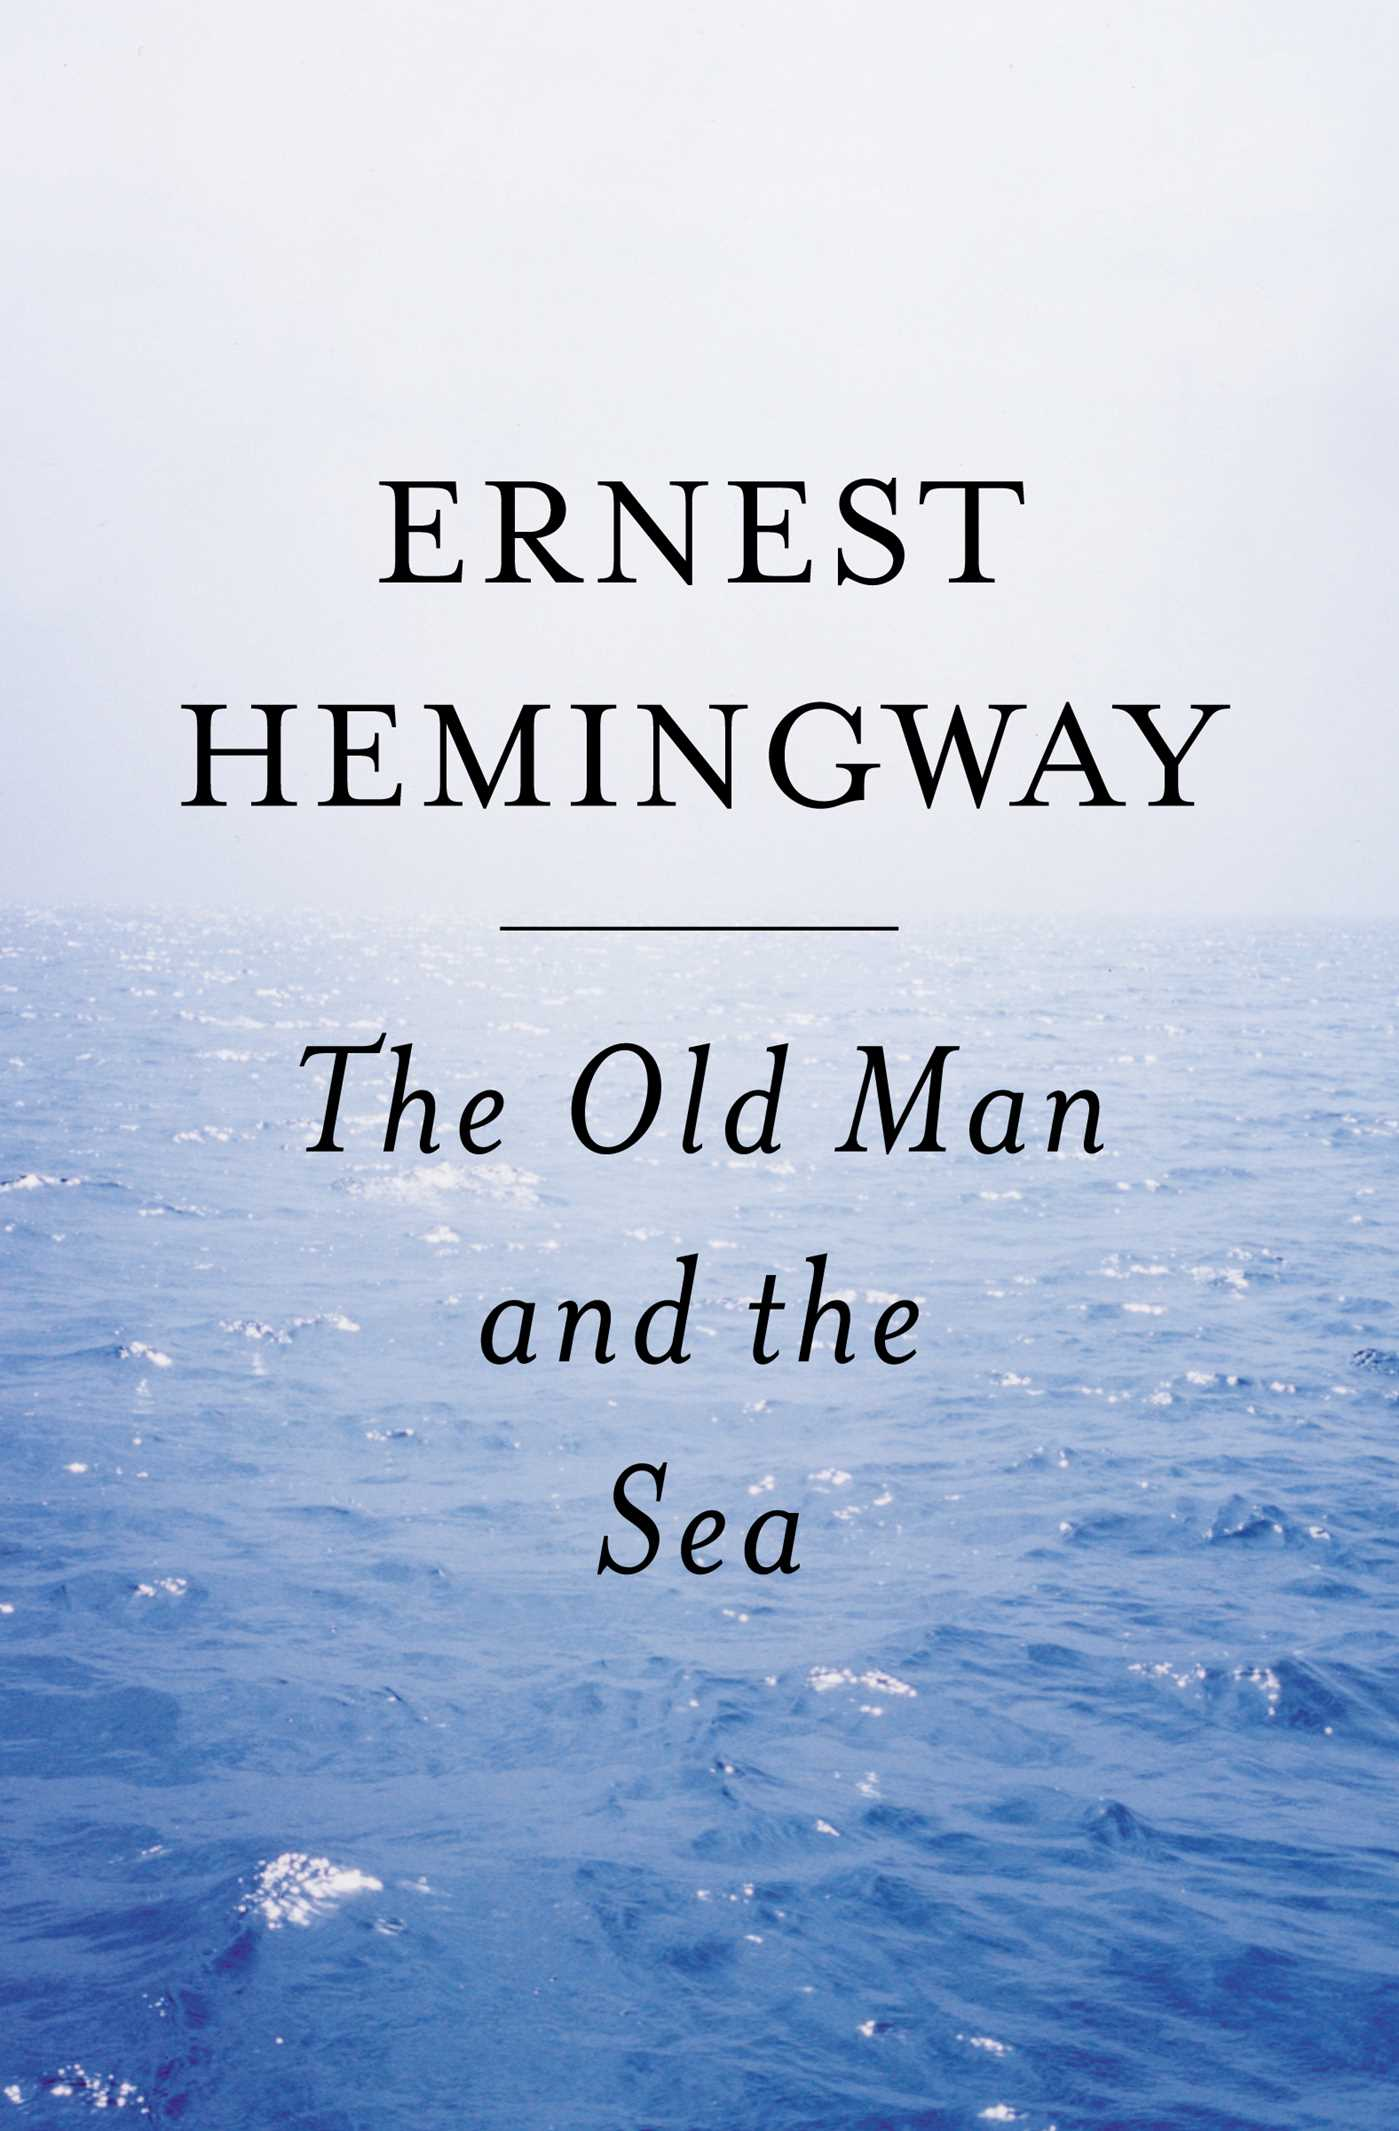 """<i><a href=""""http://www.amazon.com/dp/0684830493/?tag=timecom-20"""" target=""""_blank"""">The Old Man and the Sea</a></i>                                   By Ernest Hemingway, 96 pages. Hemingway's Pulitzer Prize-winning novella follows fisherman Santiago as he battles alone against an enormous marlin."""